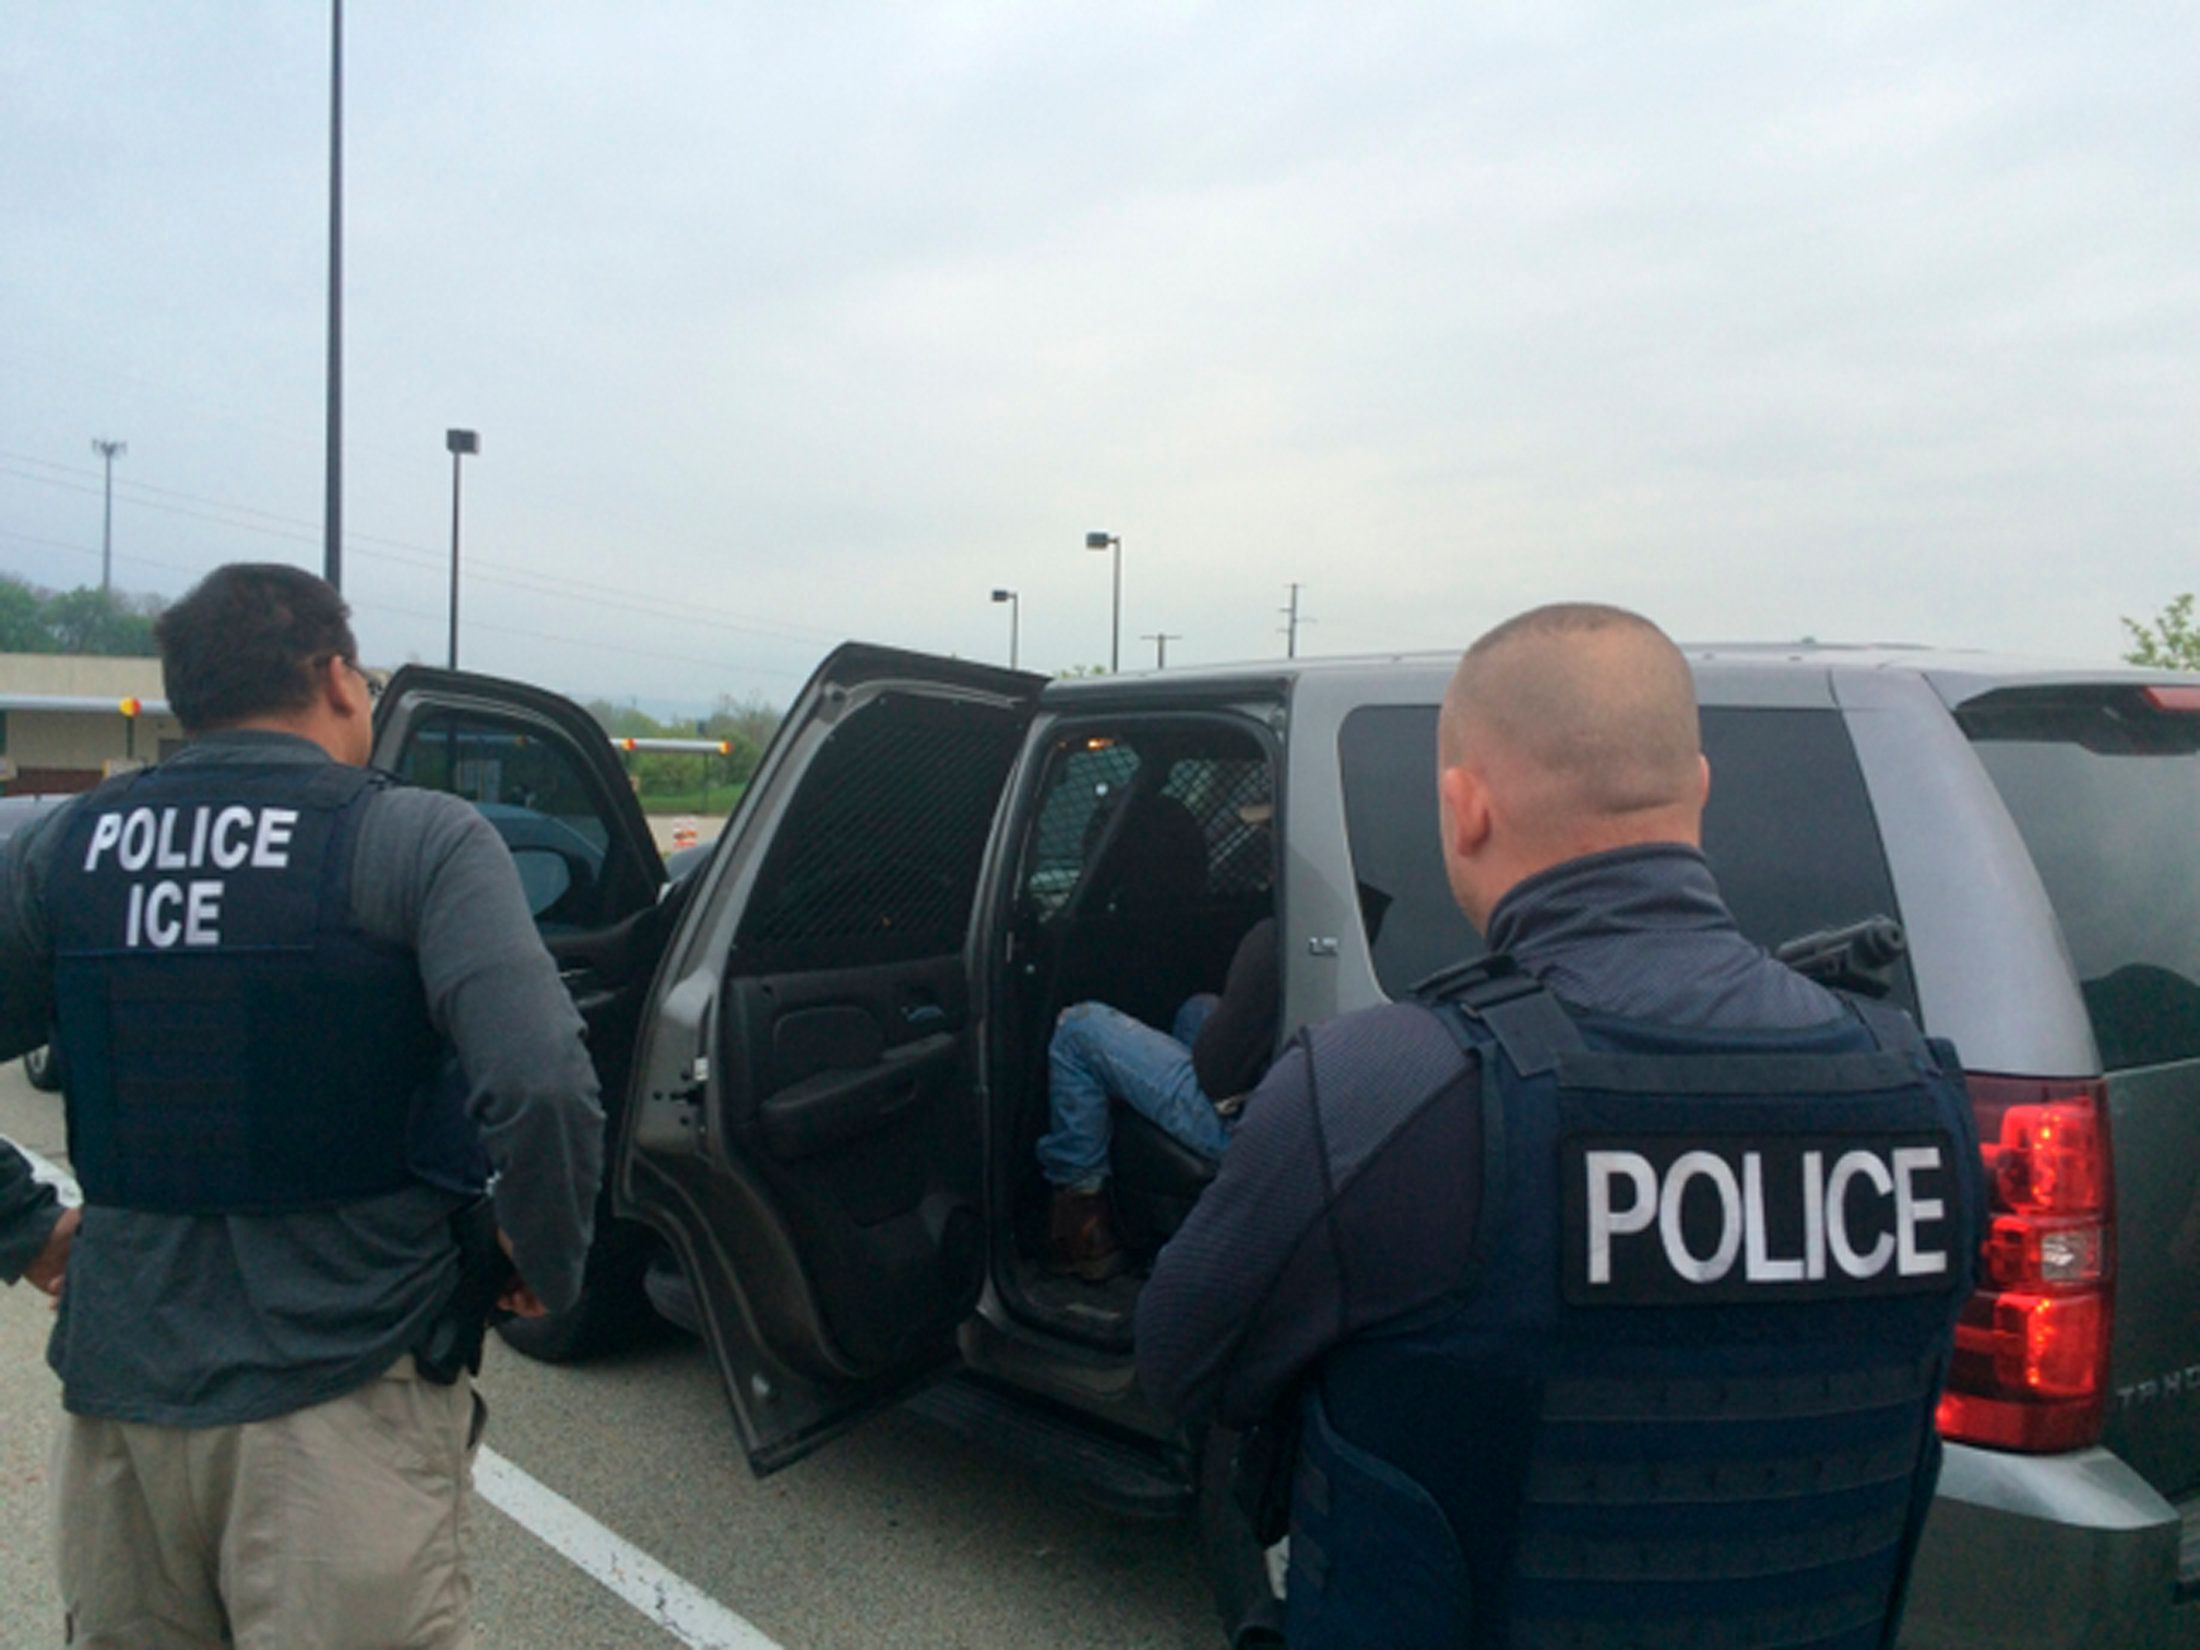 Officers from U.S. Immigration and Customs Enforcement's (ICE) Enforcement and Removal Operations (ERO) are shown during an operation targeting criminal aliens and other immigration violators in Philadelphia, Pennsylvania, United States in this image released May 11, 2016.   Courtesy ICE/Handout via REUTERS ATTENTION EDITORS - THIS IMAGE WAS PROVIDED BY A THIRD PARTY. EDITORIAL USE ONLY